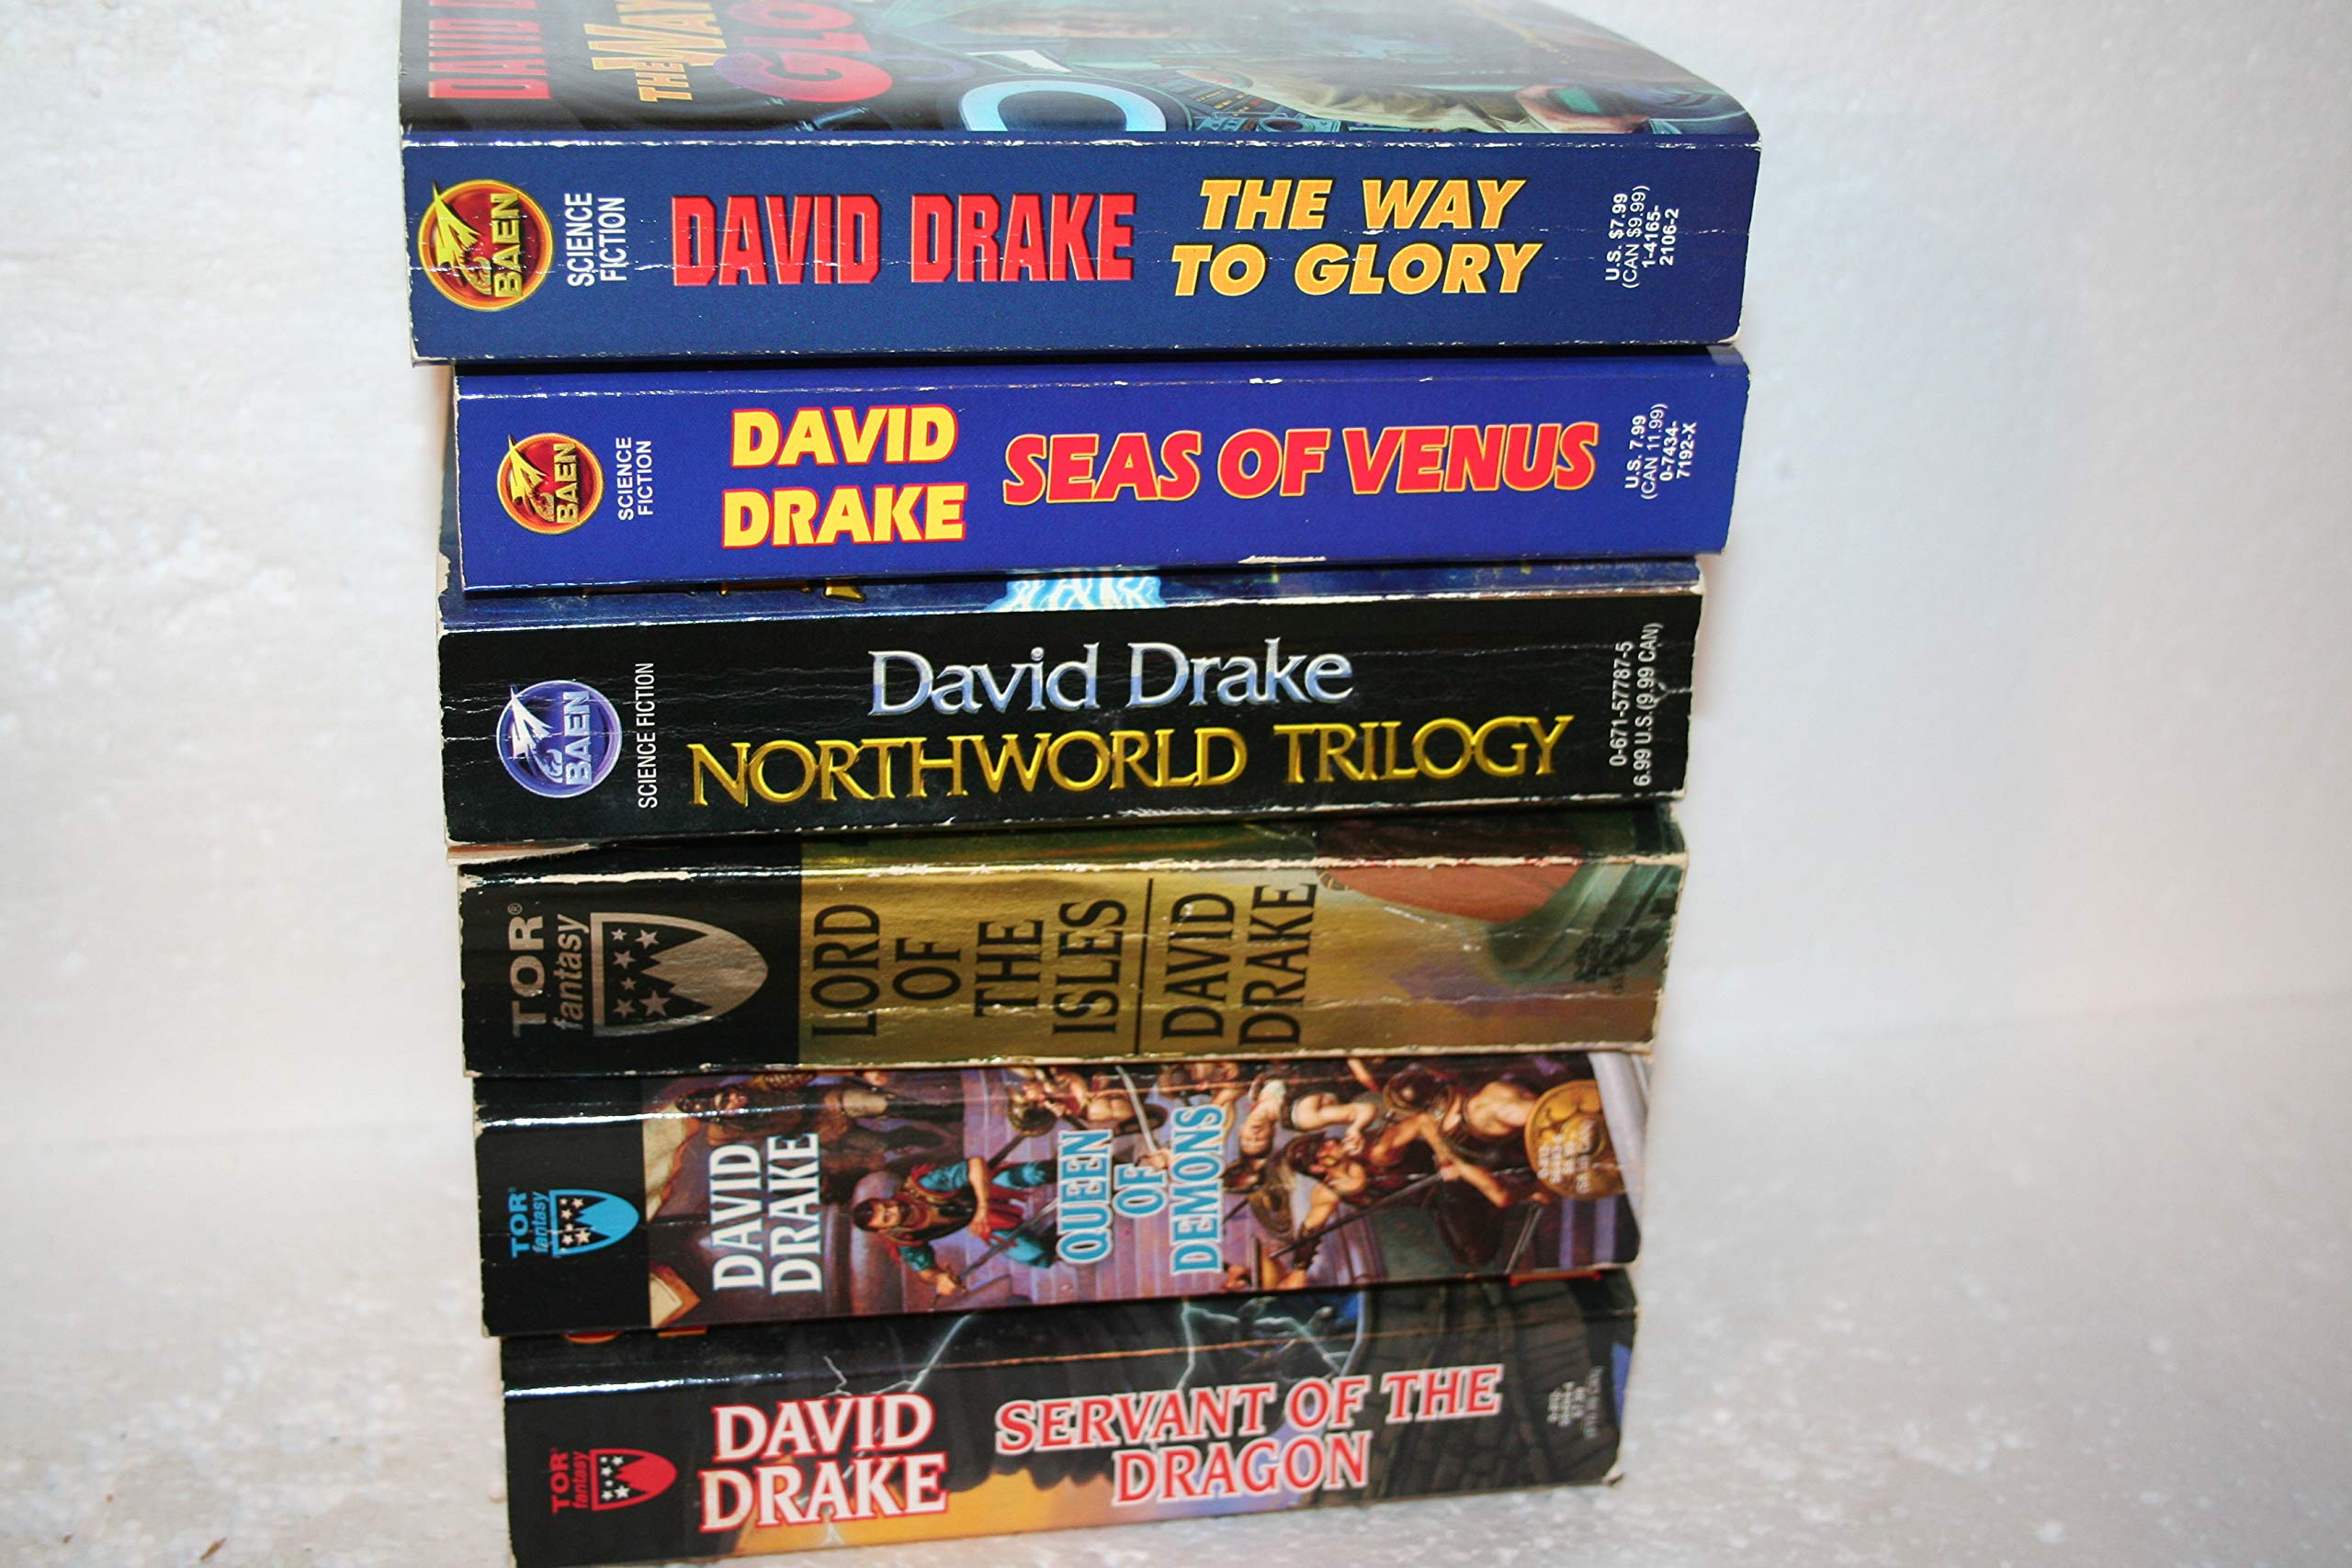 David Drake 6 books, 9 titles: David Drake: Amazon.com: Books